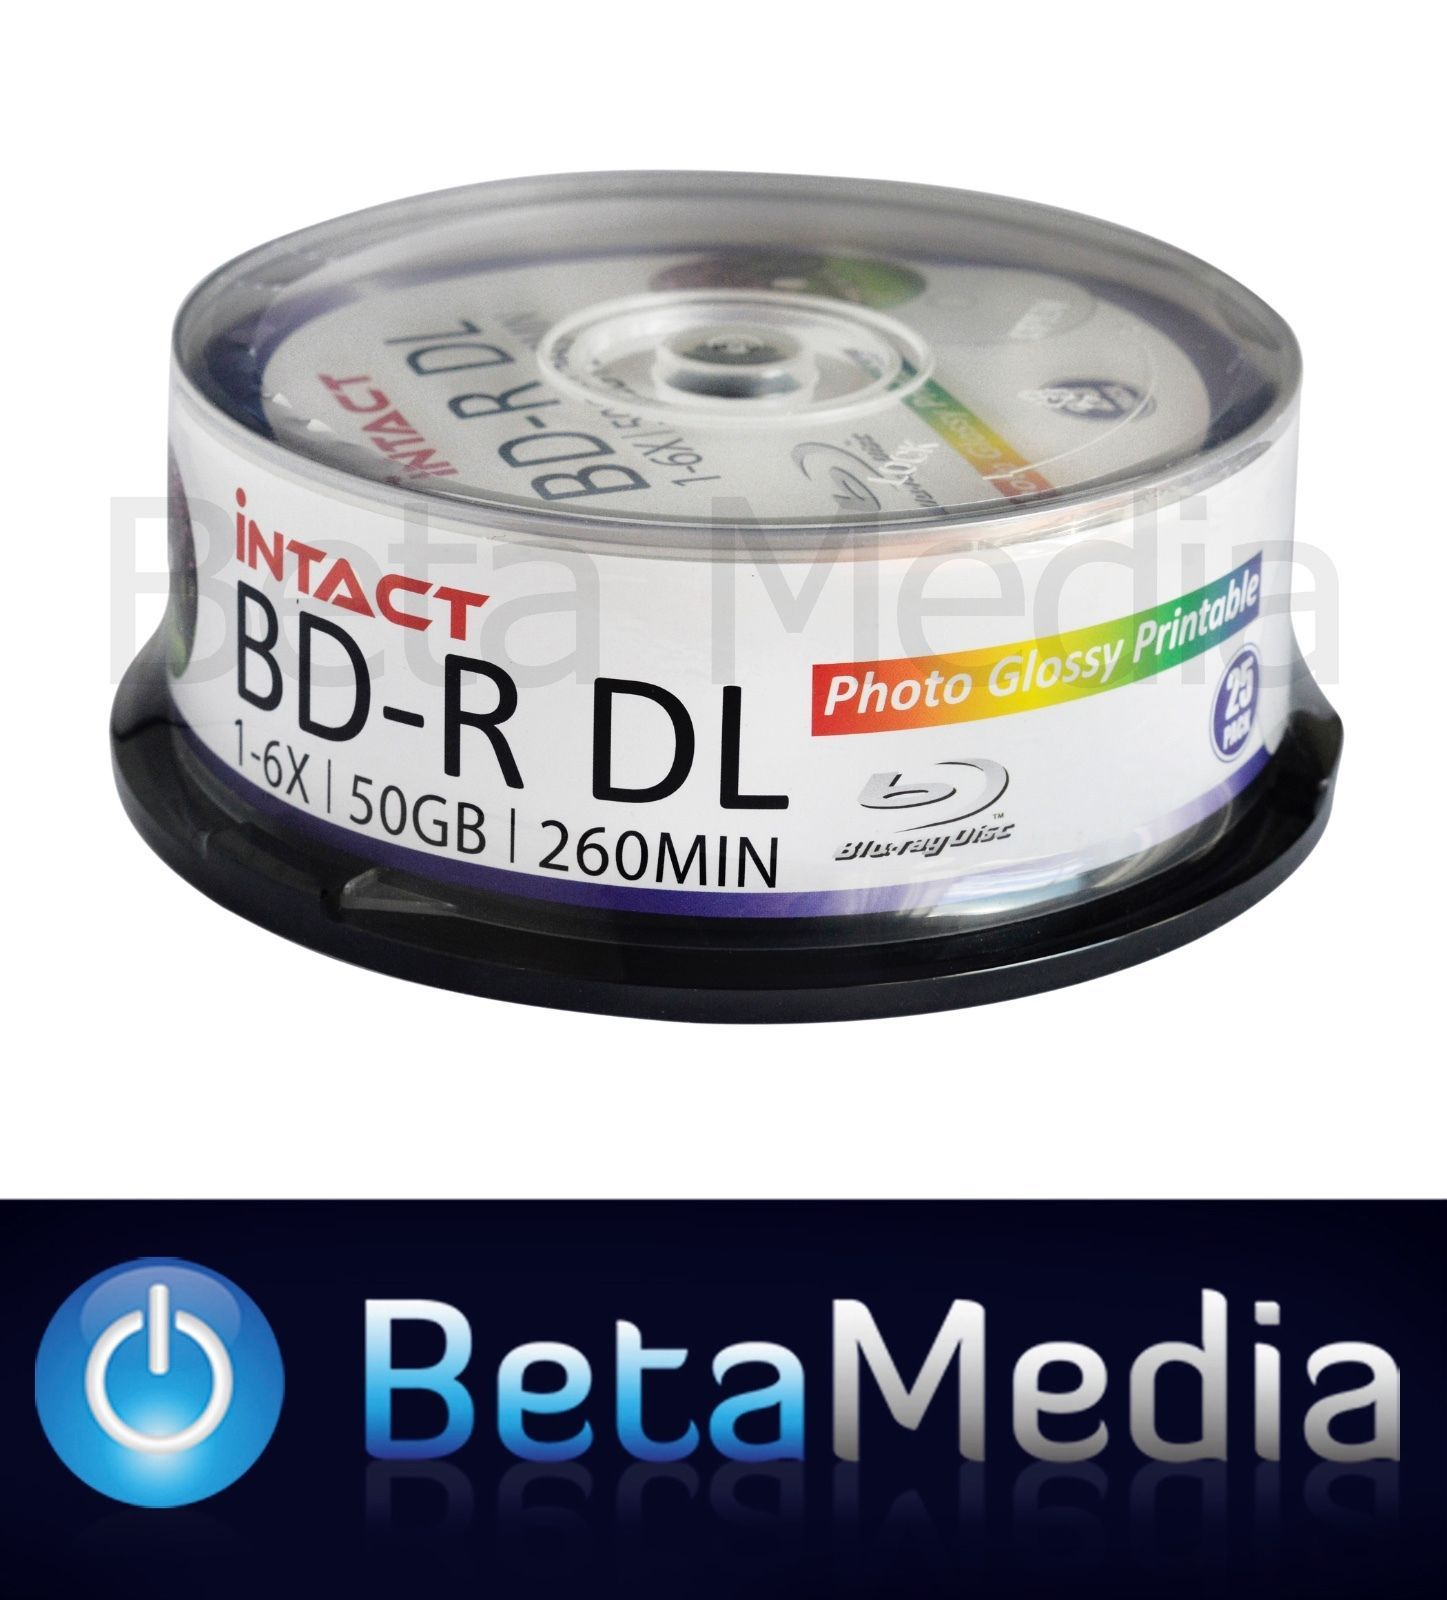 picture about Printable Blu Ray Discs named 25 x Intact Blu-ray BD-R DL 6x 50GB Shiny Printable - Substantial Means Blu ray Discs